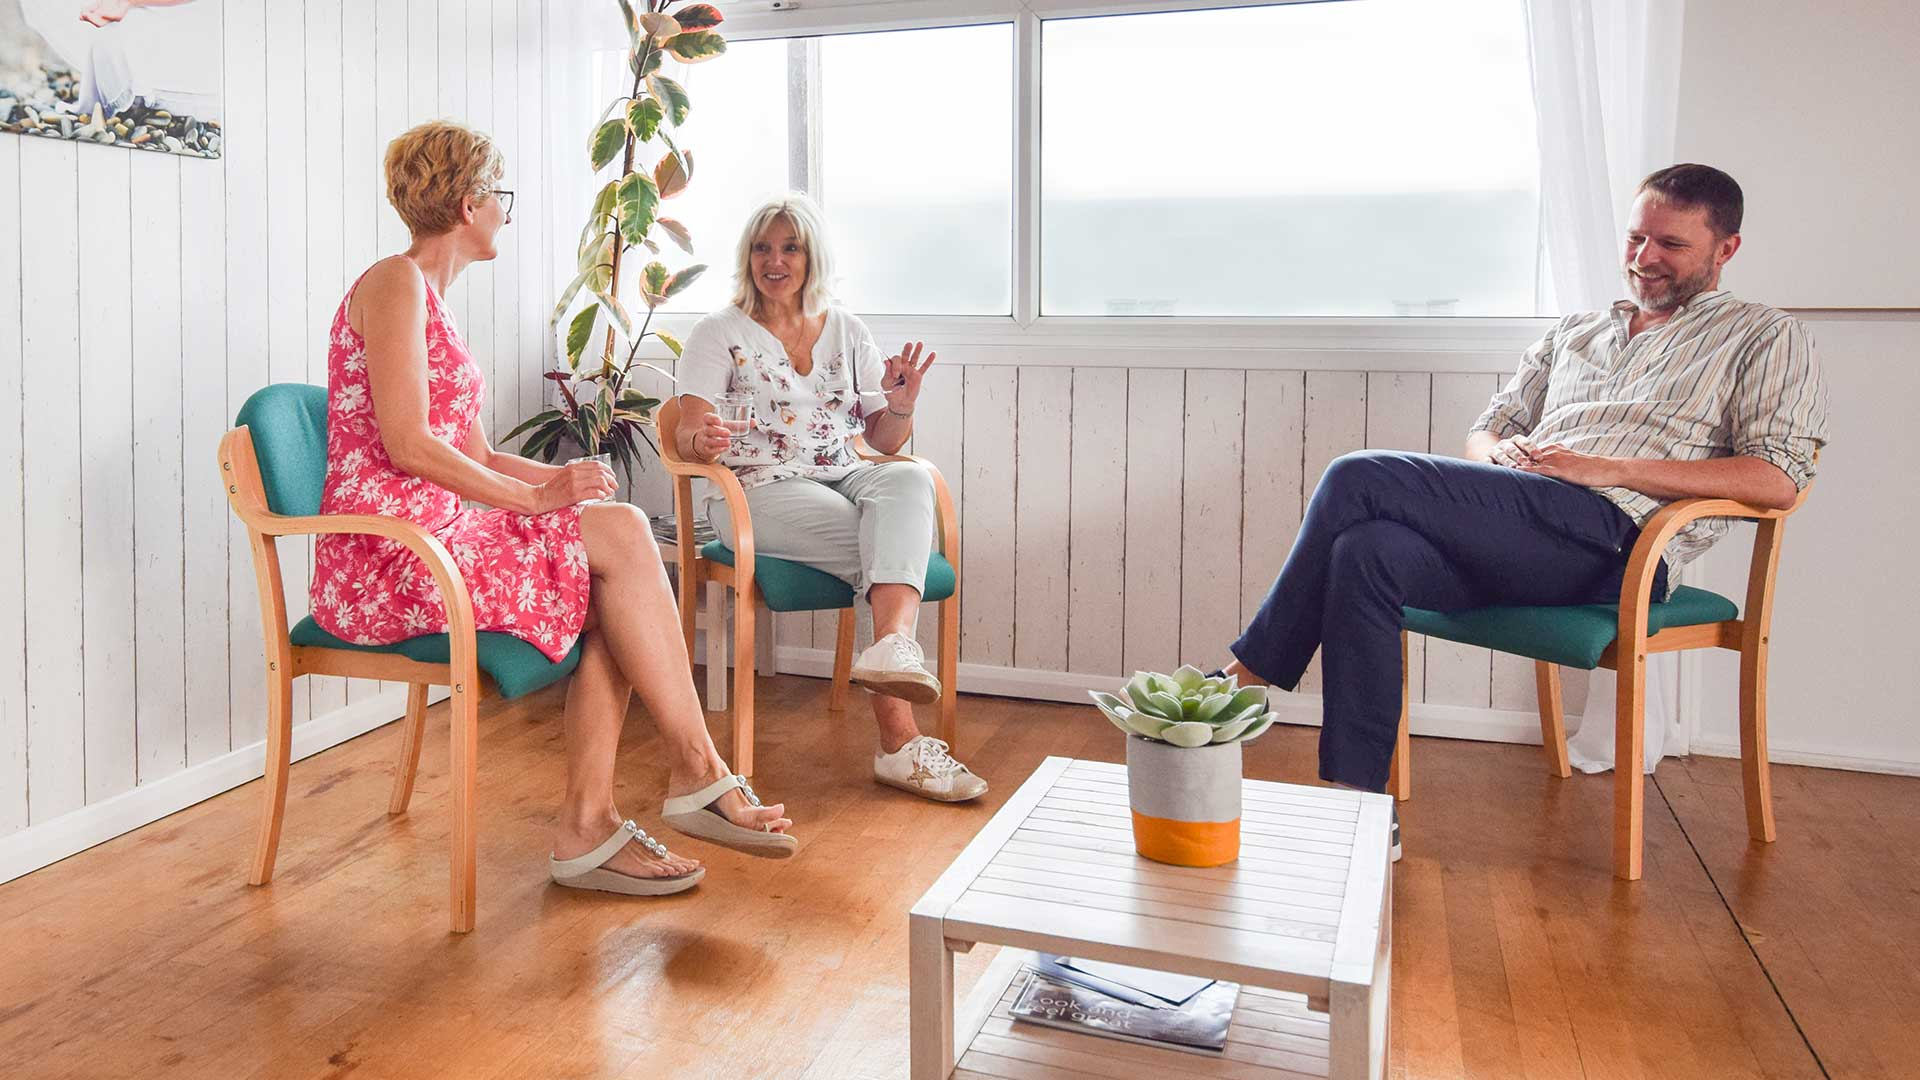 photo of a councillor and two people in therapy.